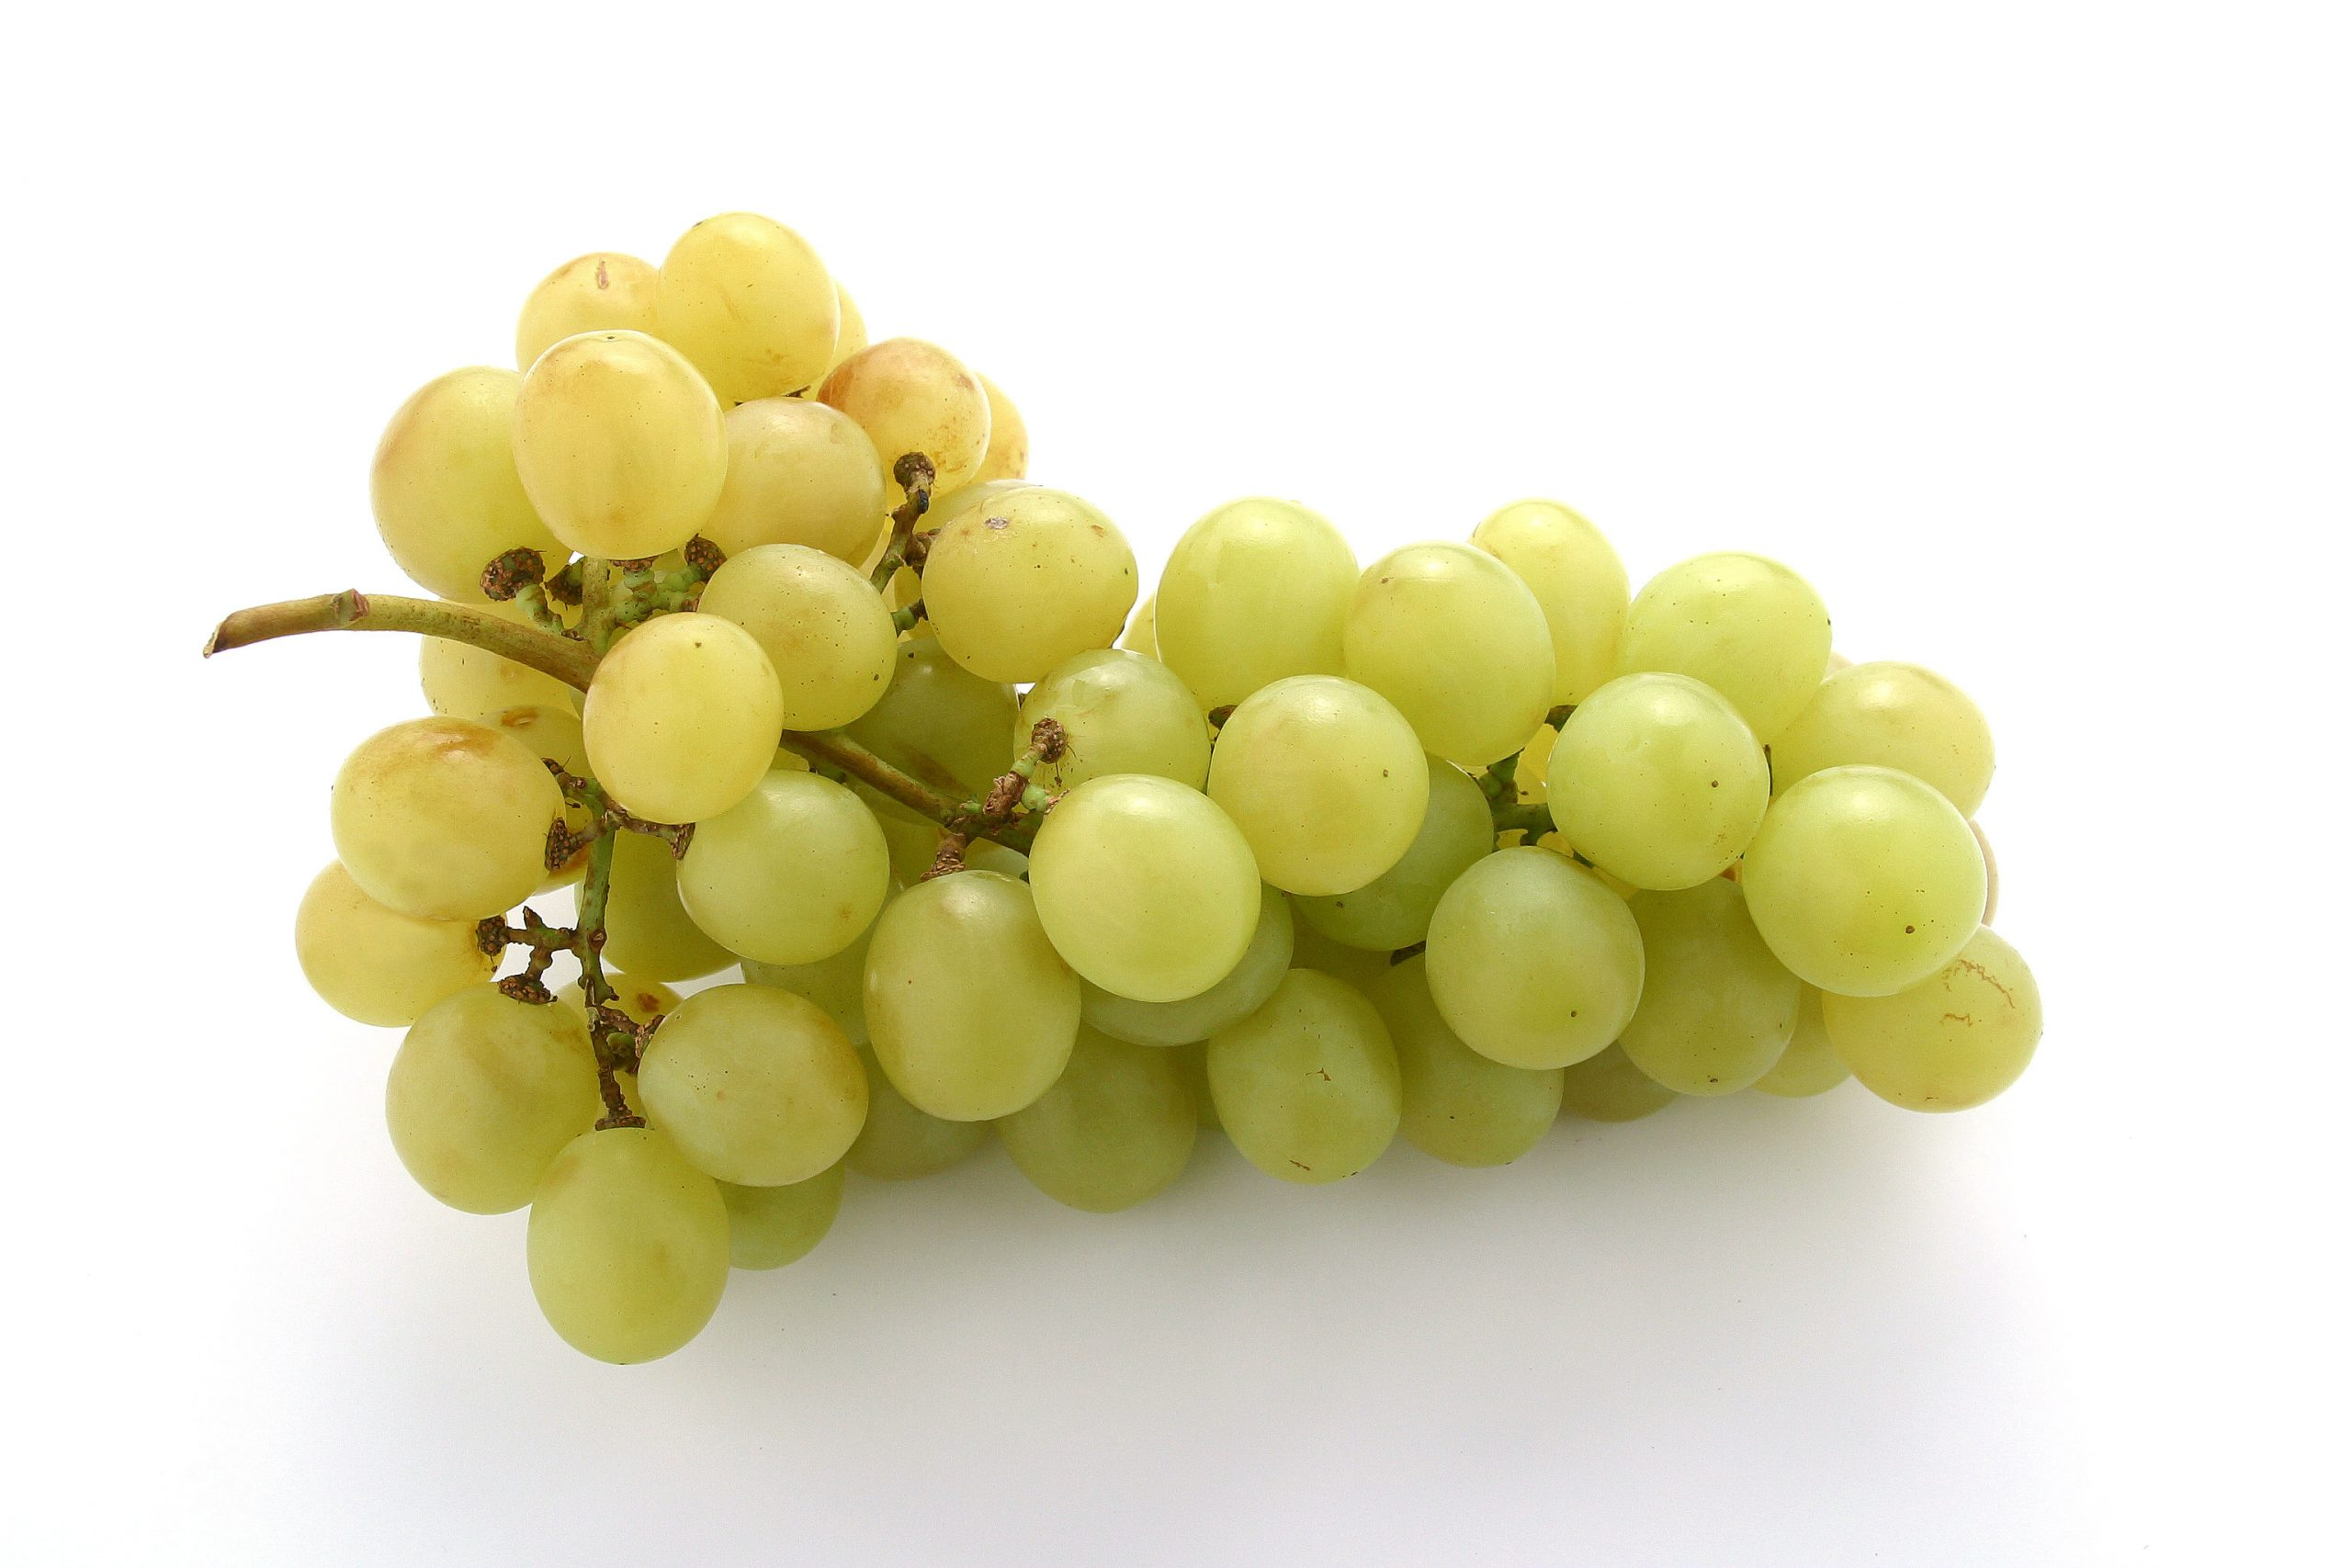 Nearly 76% of Australian households purchased grapes in the year to June 11, down from 80.1% in the year prior.